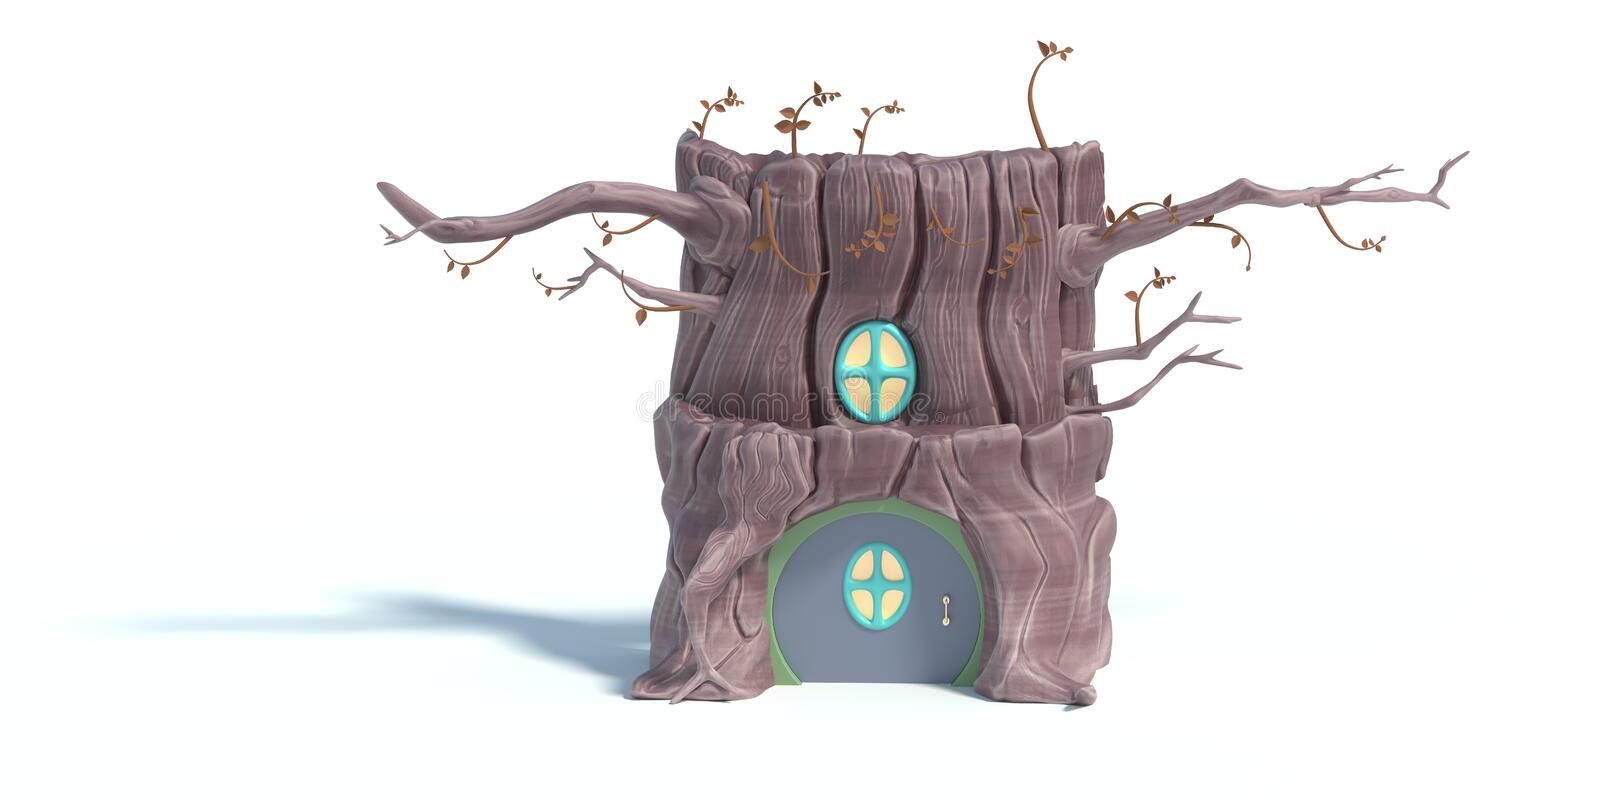 Fantasy House On A Tree Trunk  3D Stock Illustration